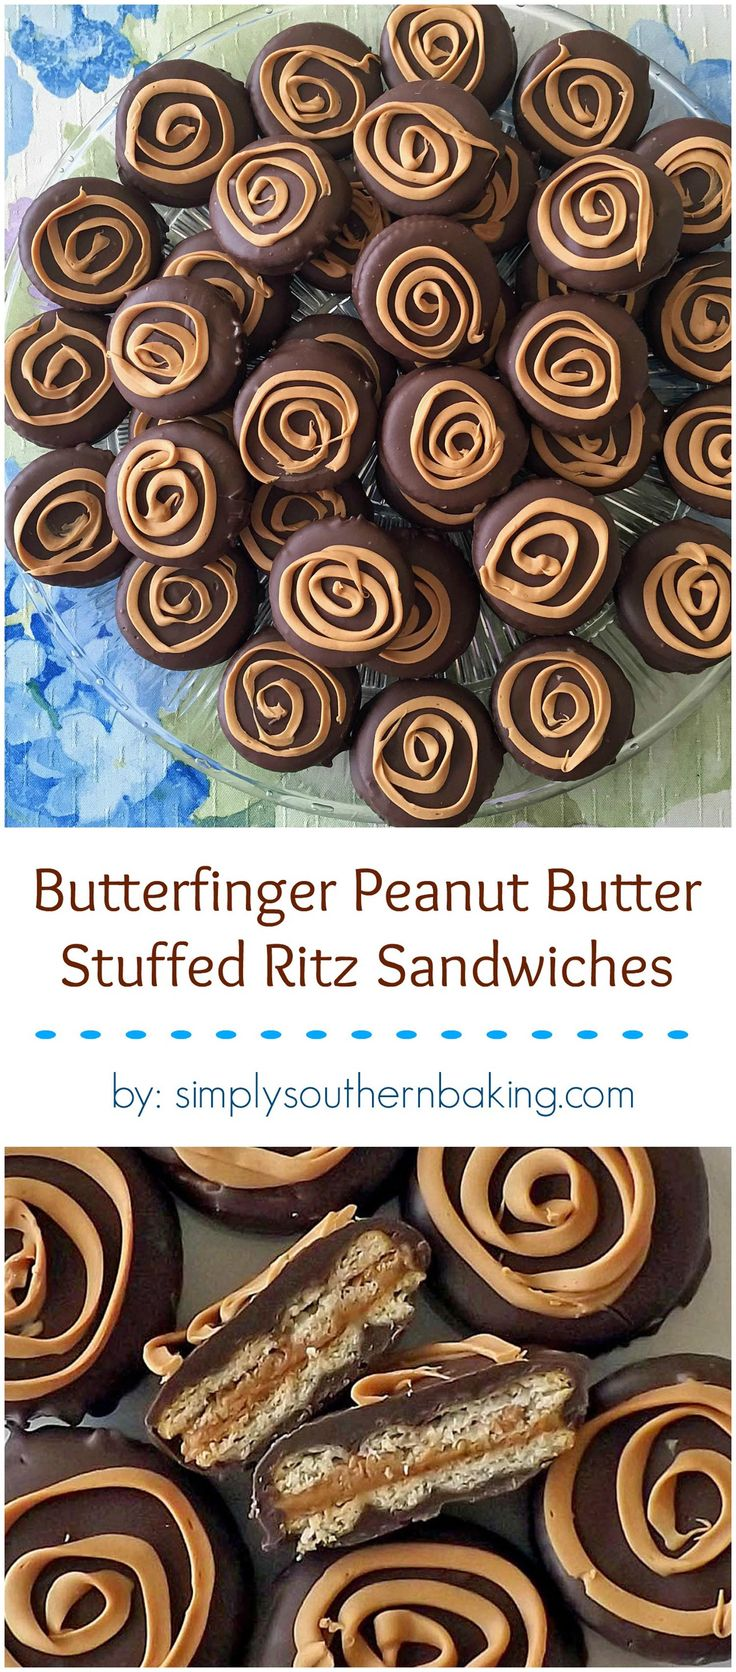 Double chocolate covered Ritz cracker sandwiches with a Butterfinger and peanut butter filling.